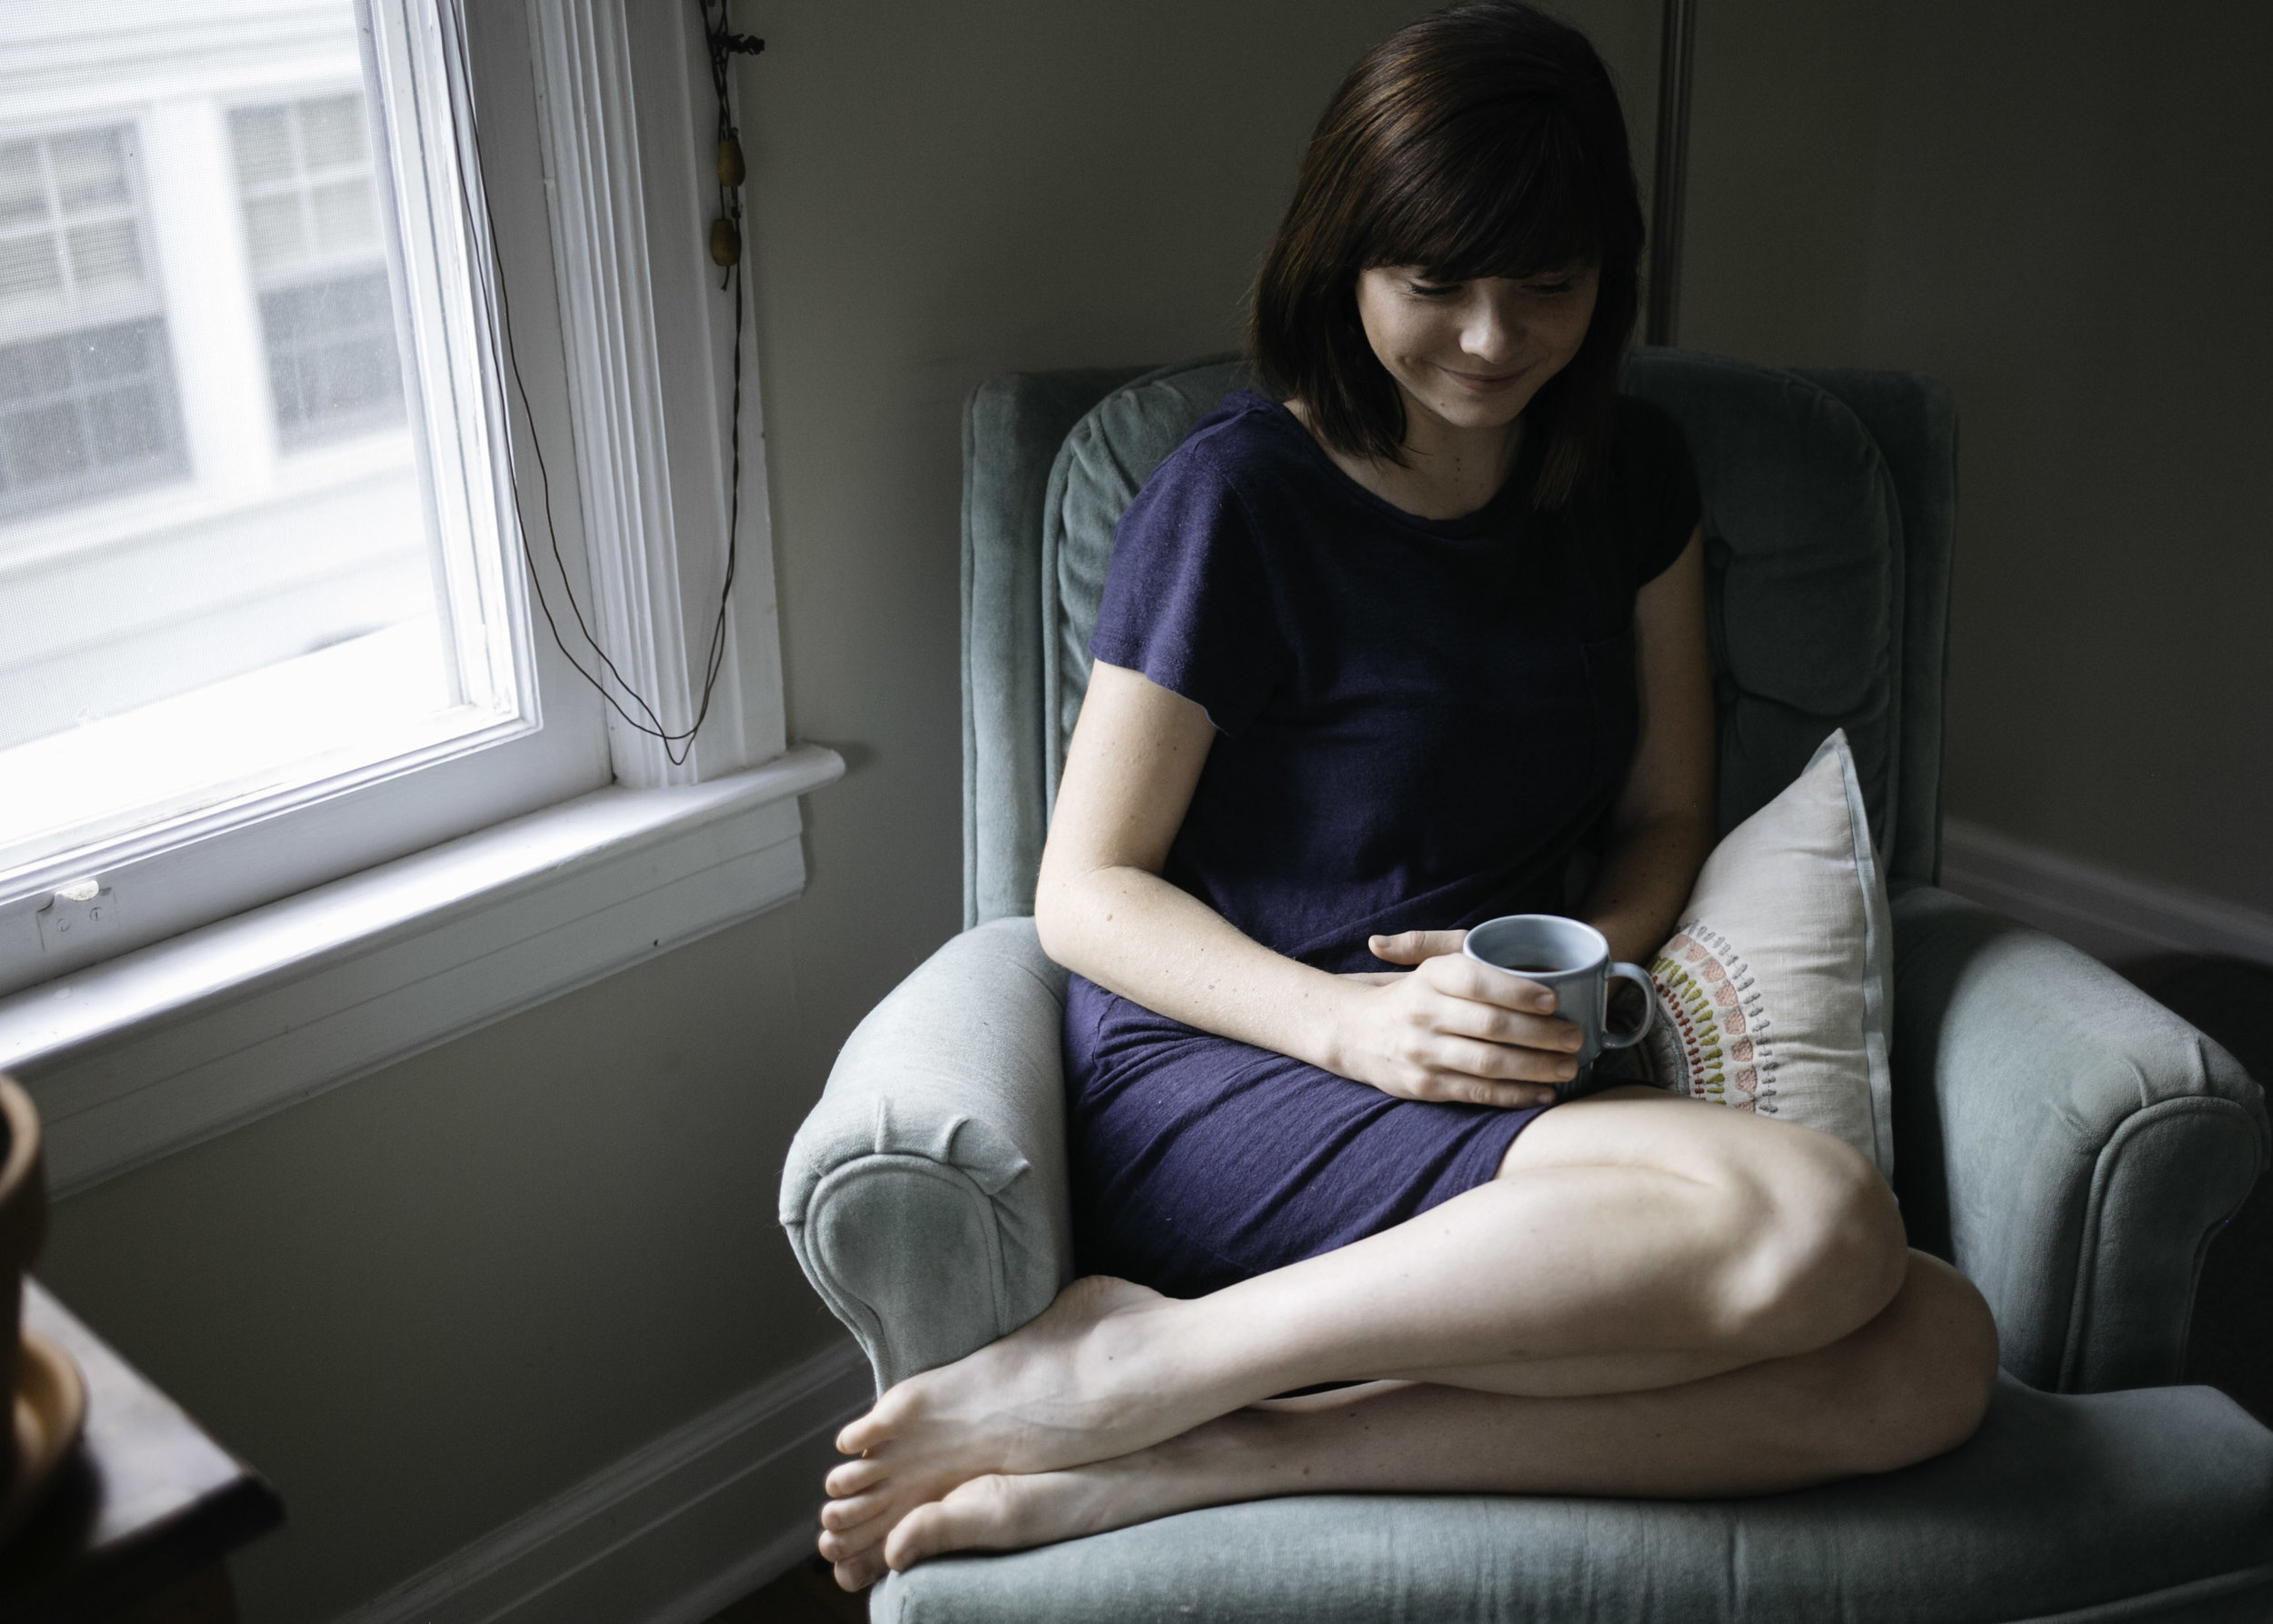 Tea, maternity, chair, window, smile, pregnant, in-home, engagement, love, lifestyle, morning, simple, Saturday